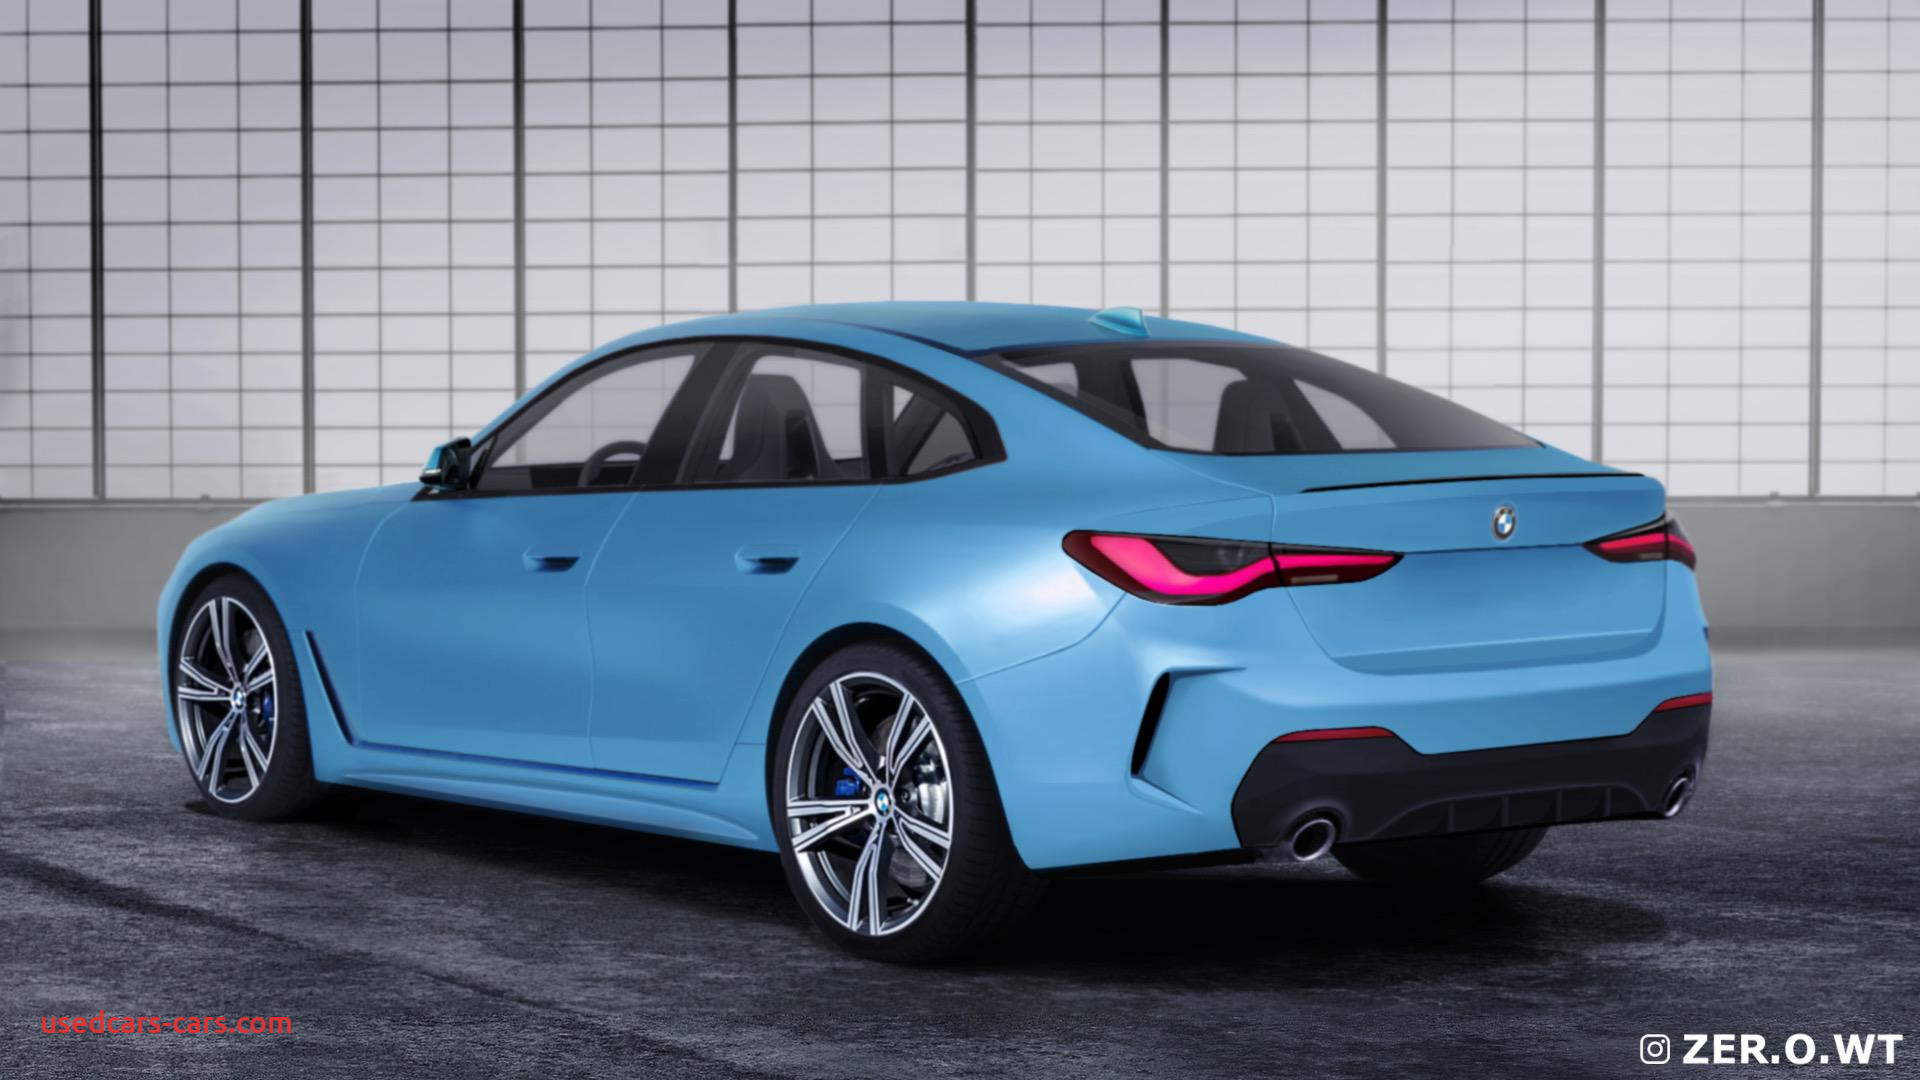 2021 Bmw 440i Gran Coupe Inspirational 2021 Bmw 4 Series Gran Coupe S A Series Of Renderings